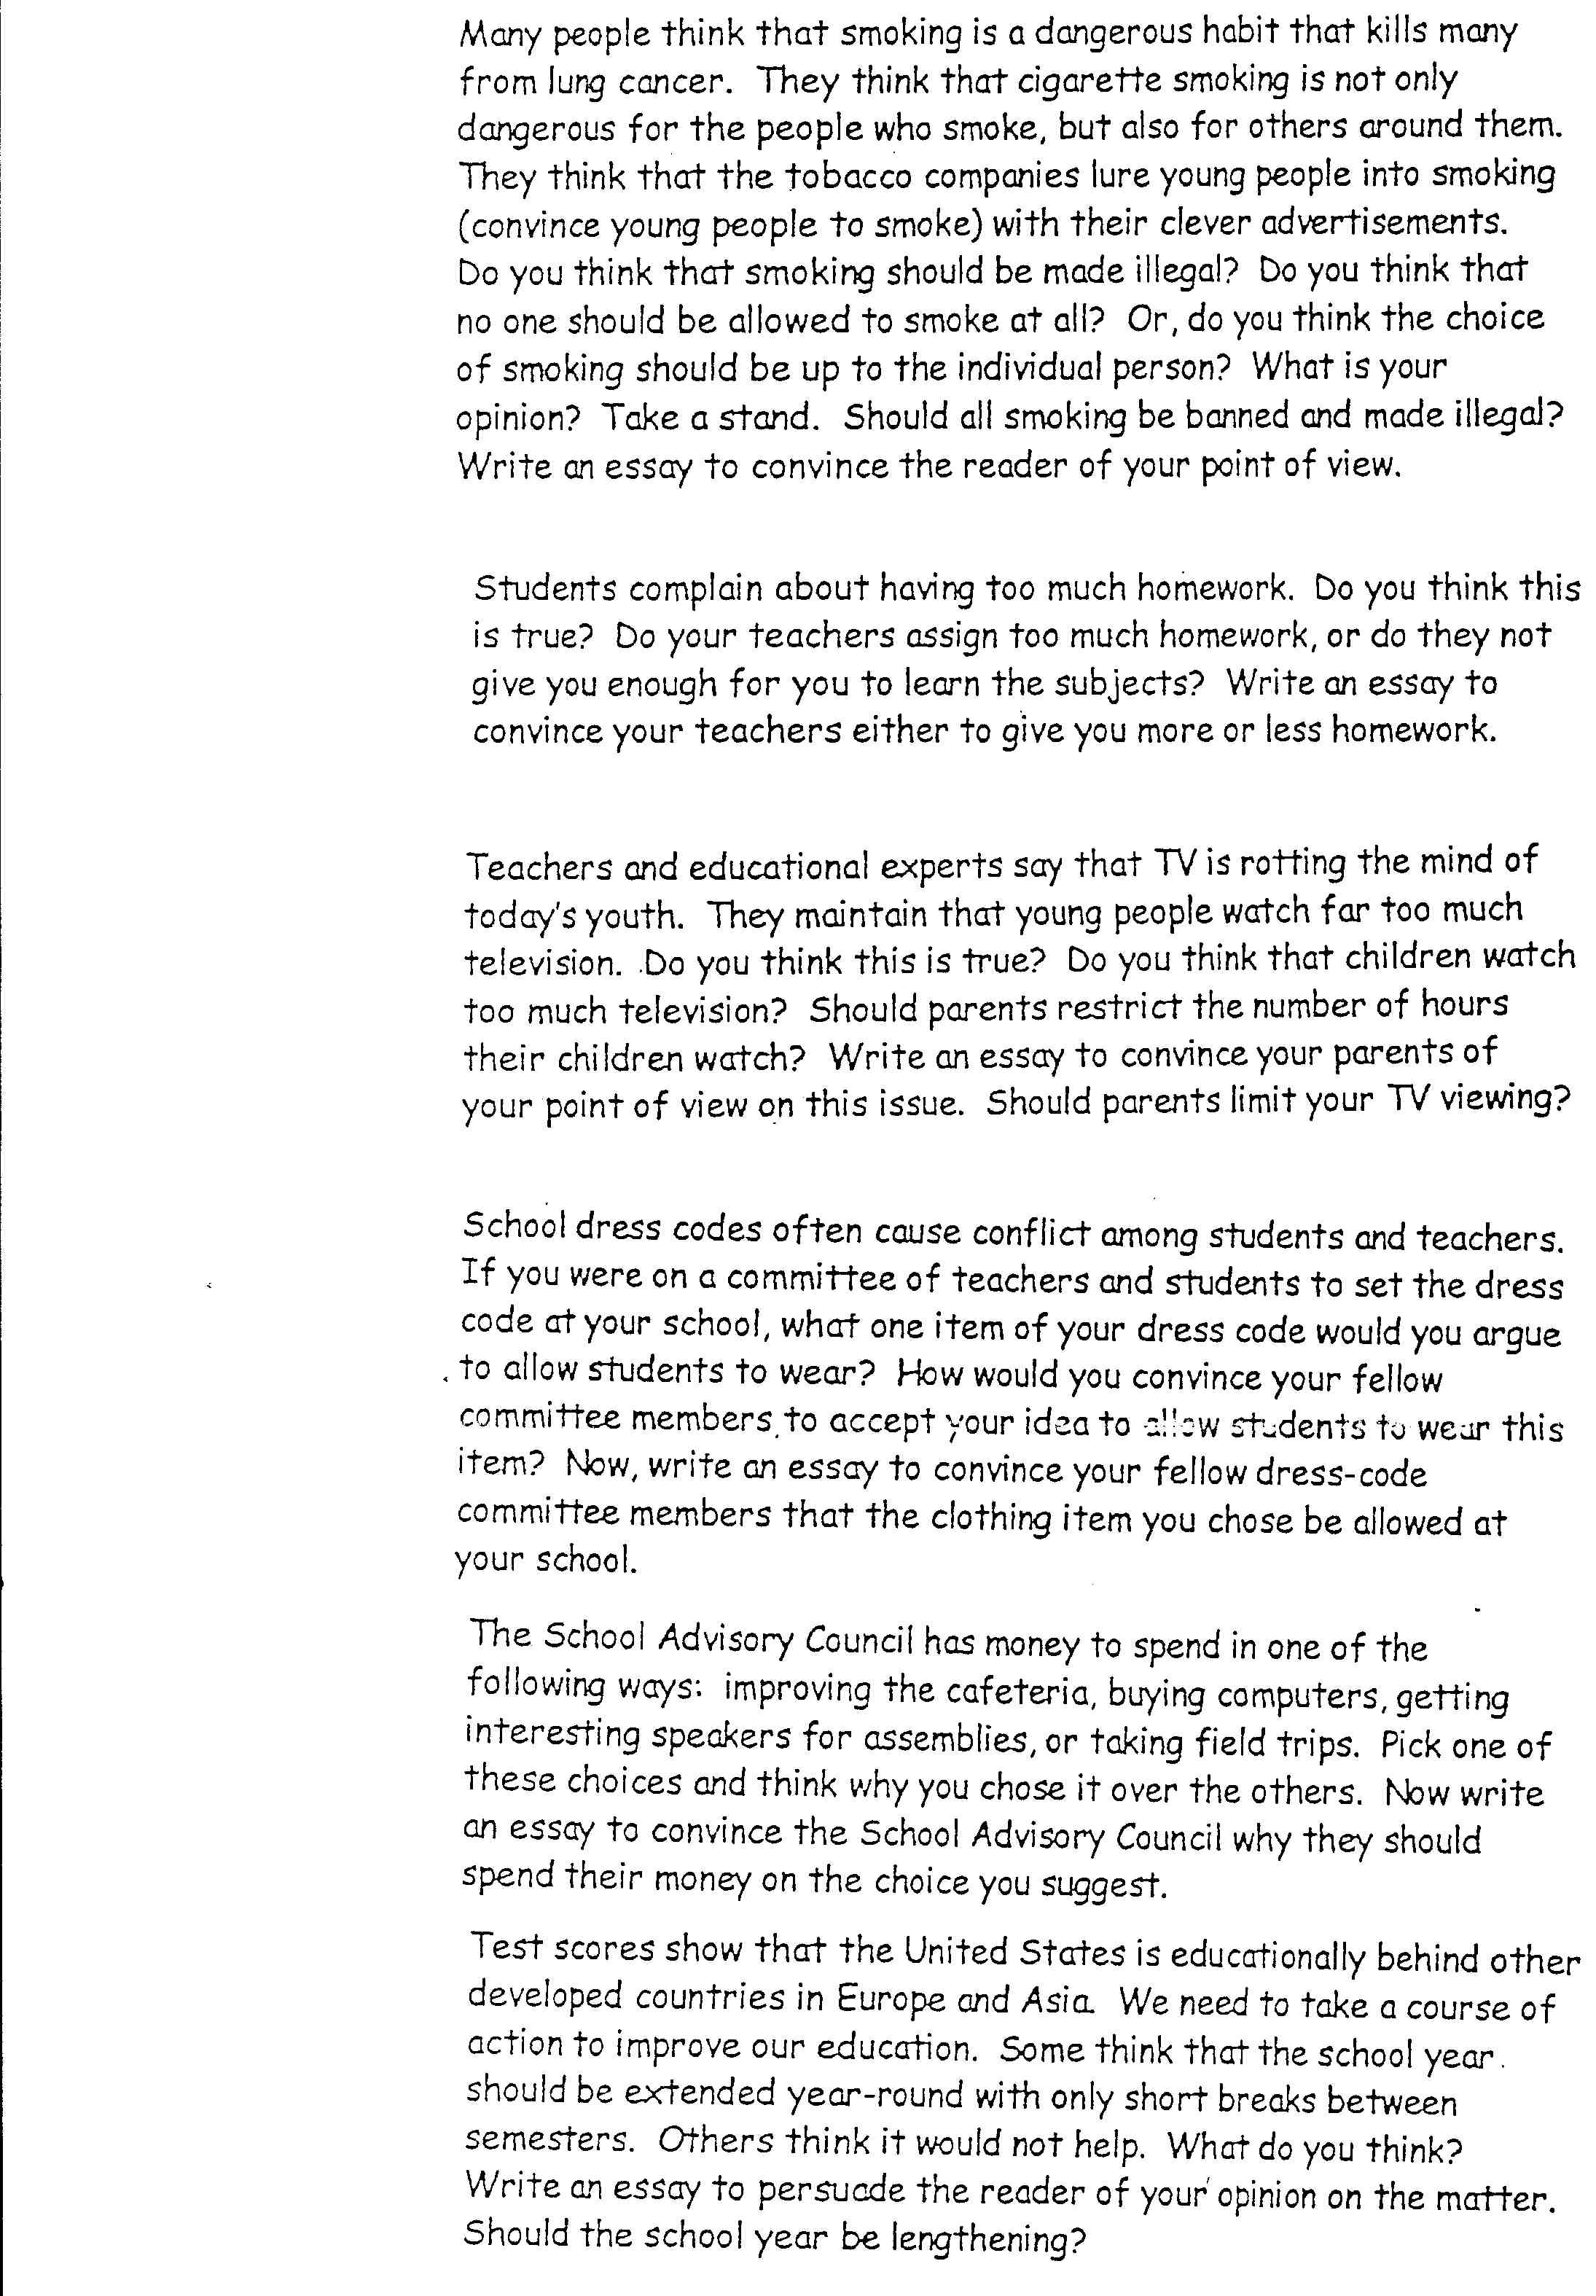 020 Interesting Essay Topics Argumentative Persuasive L Amazing Descriptive To Write About For Grade 8 In Urdu Synthesis Full